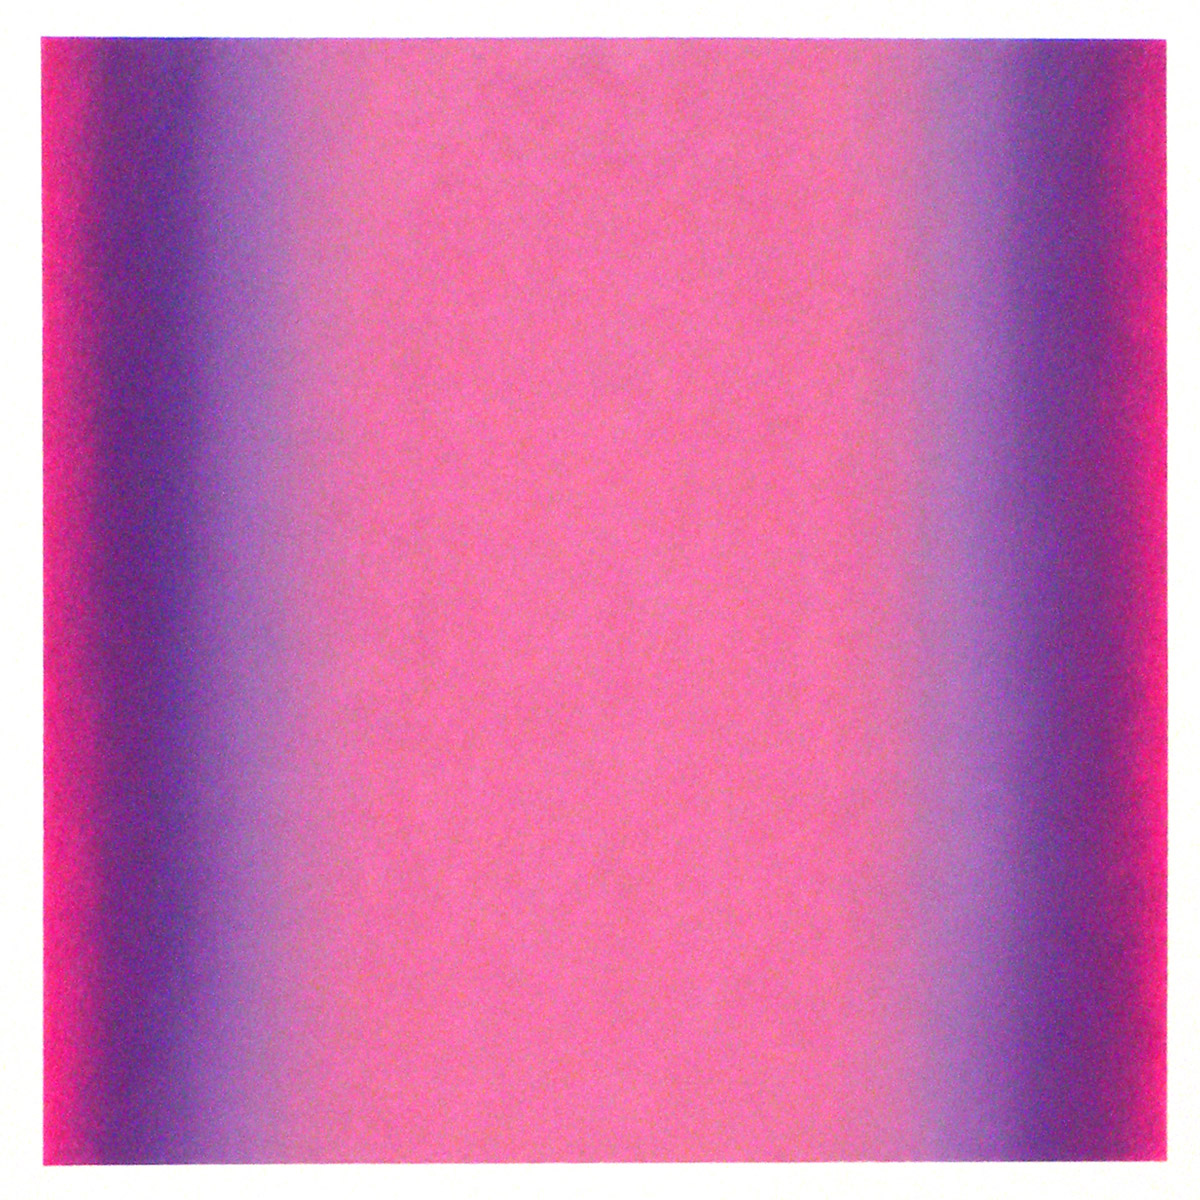 Counterpoint #31, 2012, pastel on paper, image 14 x 14 in. (36 x 36 cm.), sheet 30 x 22 in. (76 x 56 cm.)